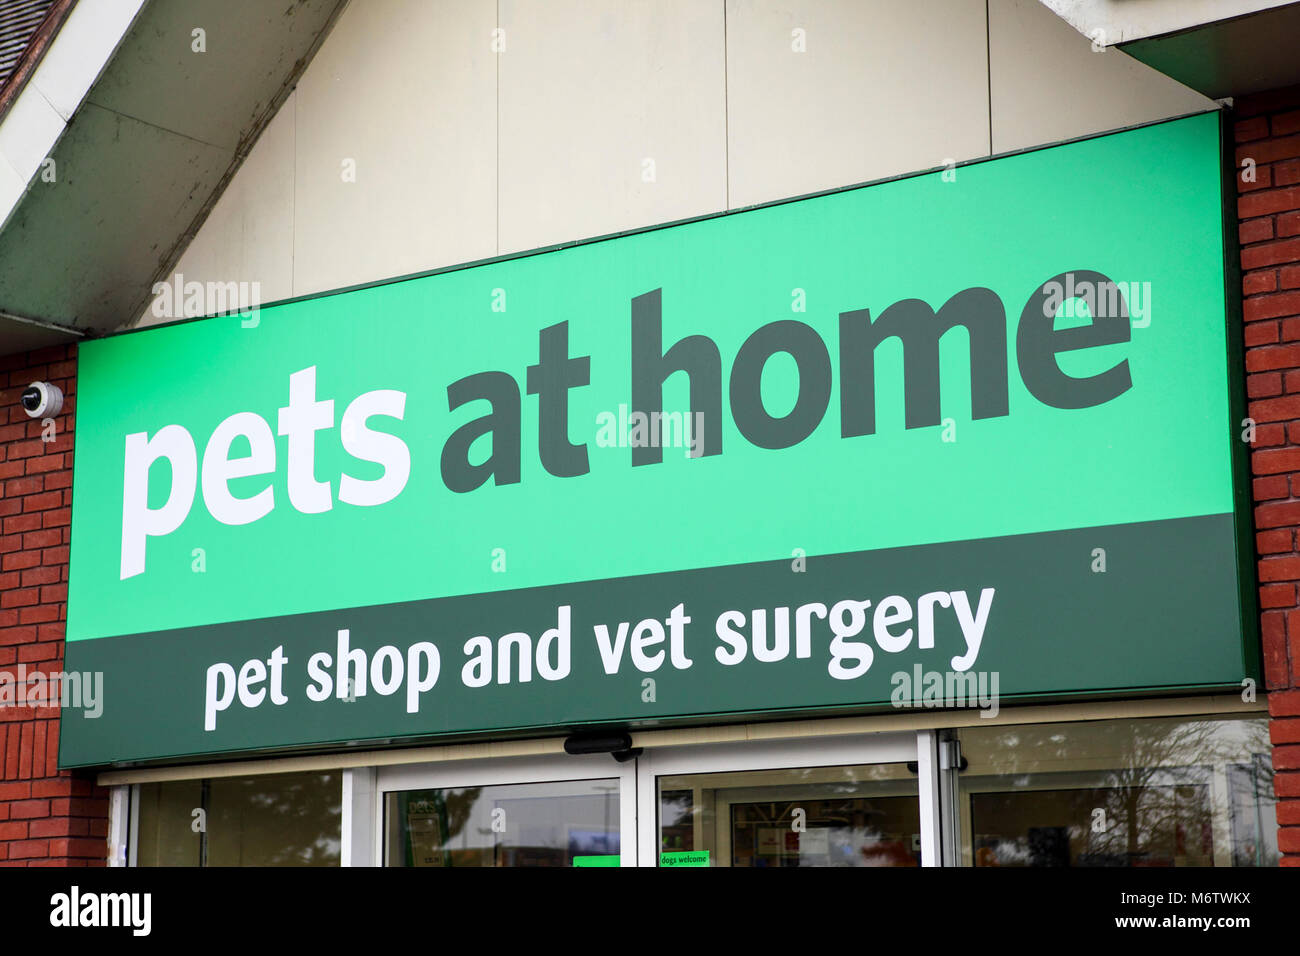 Pets at Home retail outlet, viewed here at their business in Meole Brace Retail Park. - Stock Image